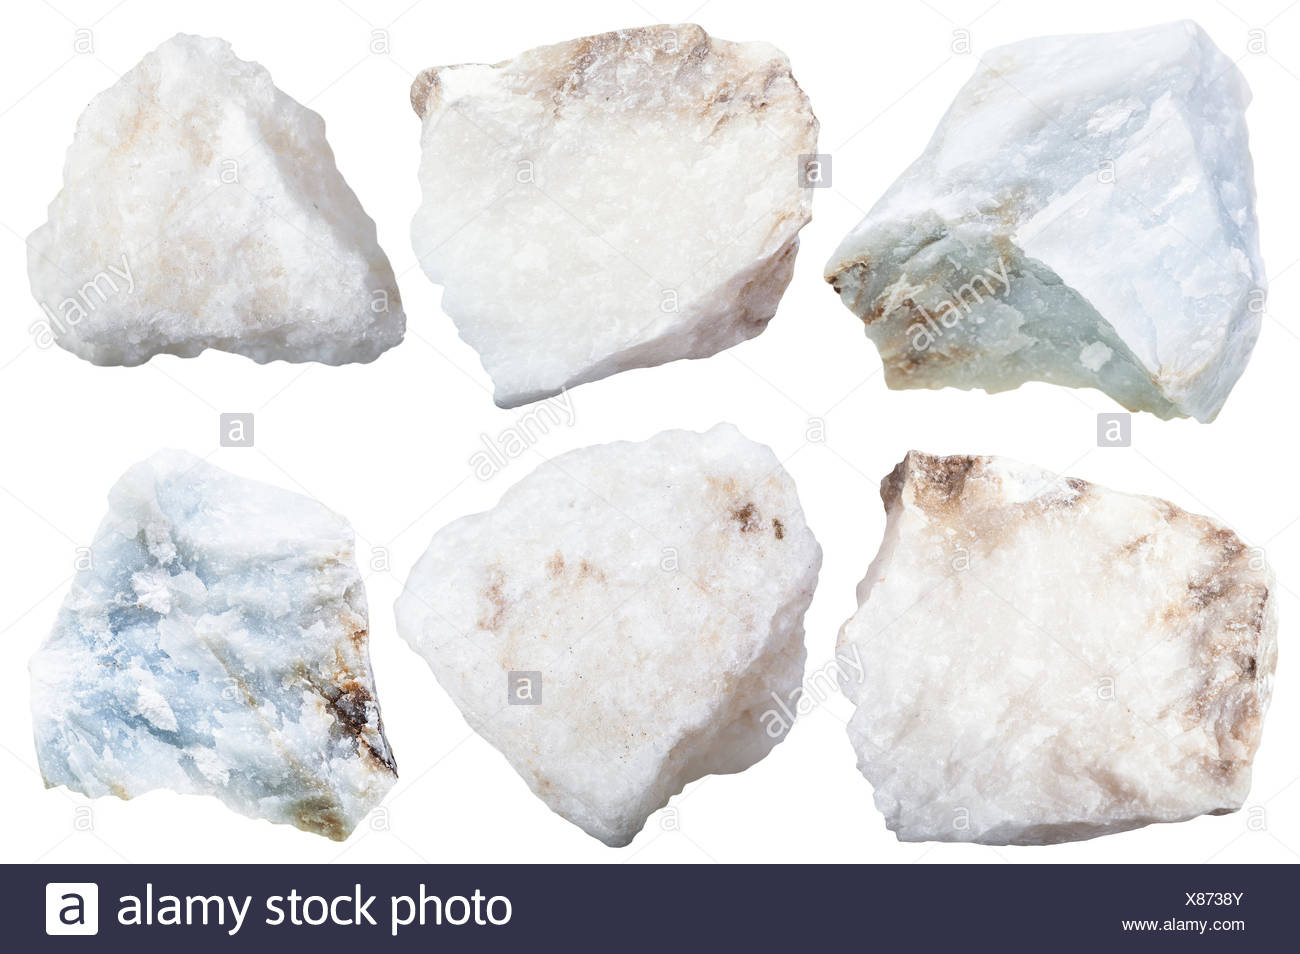 collection from specimens of anhydrite stone - Stock Image